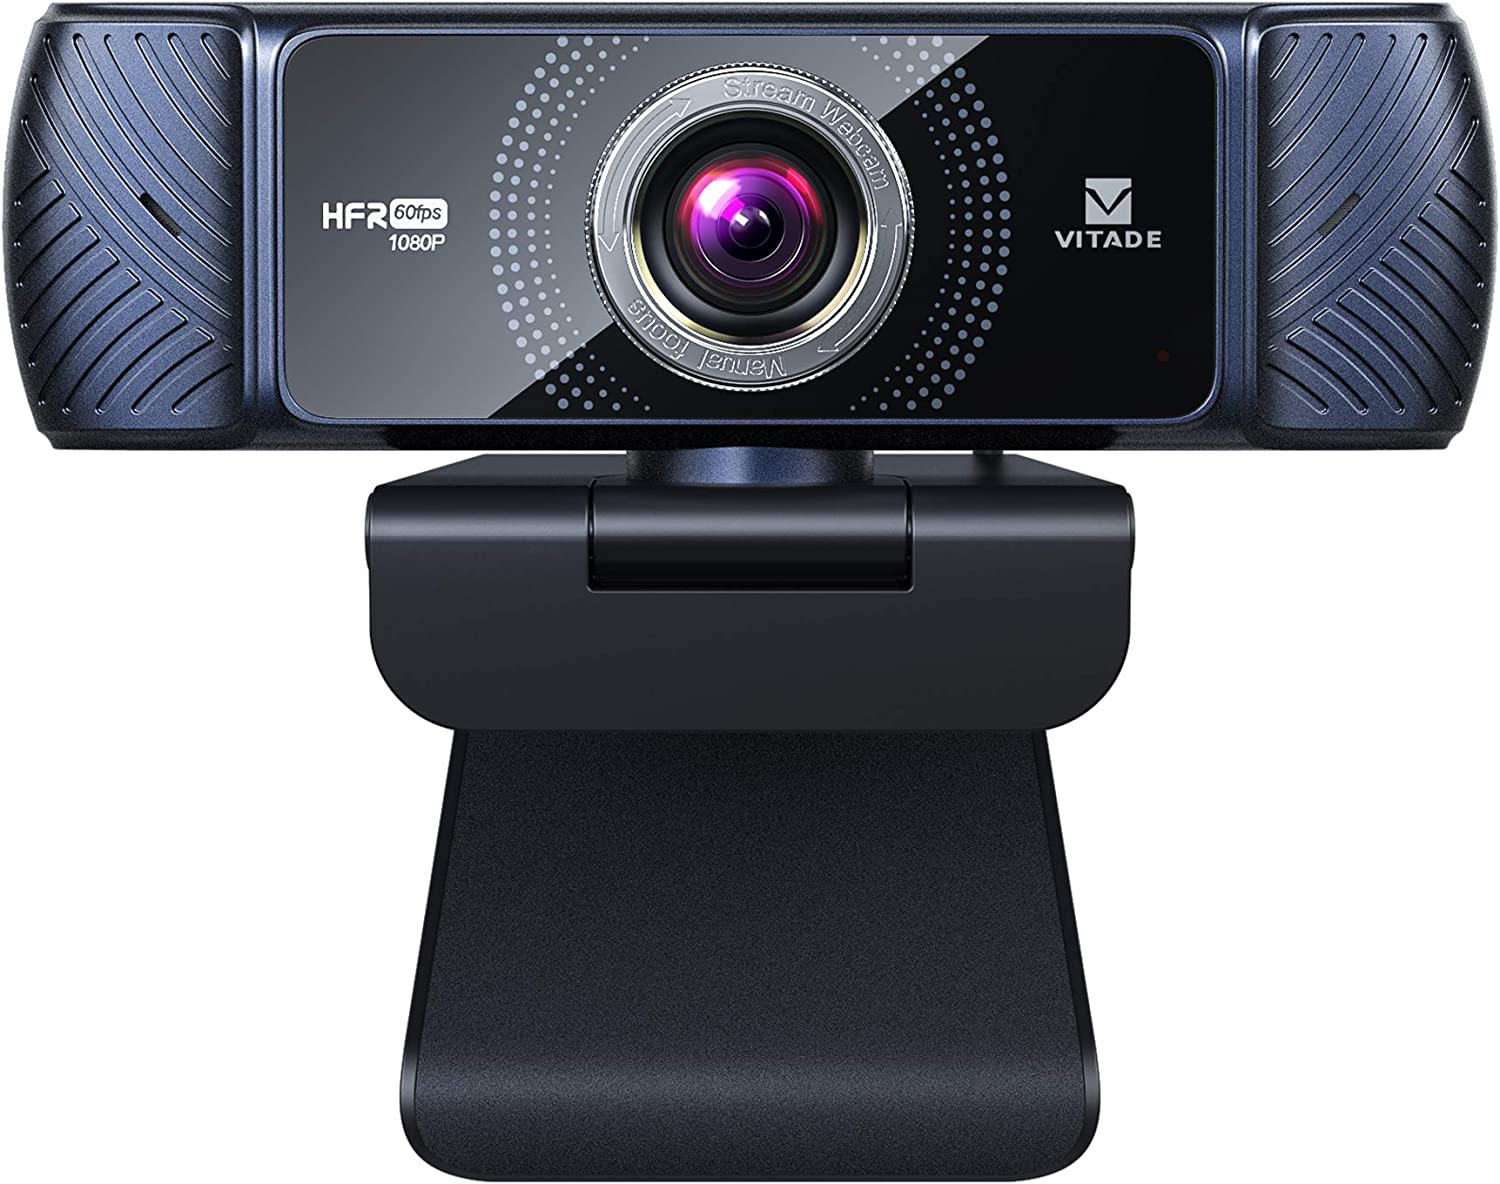 Webcam 1080P 60fps with Microphone for Streaming, Vitade 682H Pro HD USB Computer Web Camera Cam for Gaming Conferencing Mac Windows Desktop PC Laptop Xbox Skype OBS Twitch YouTube (Tripod Included)